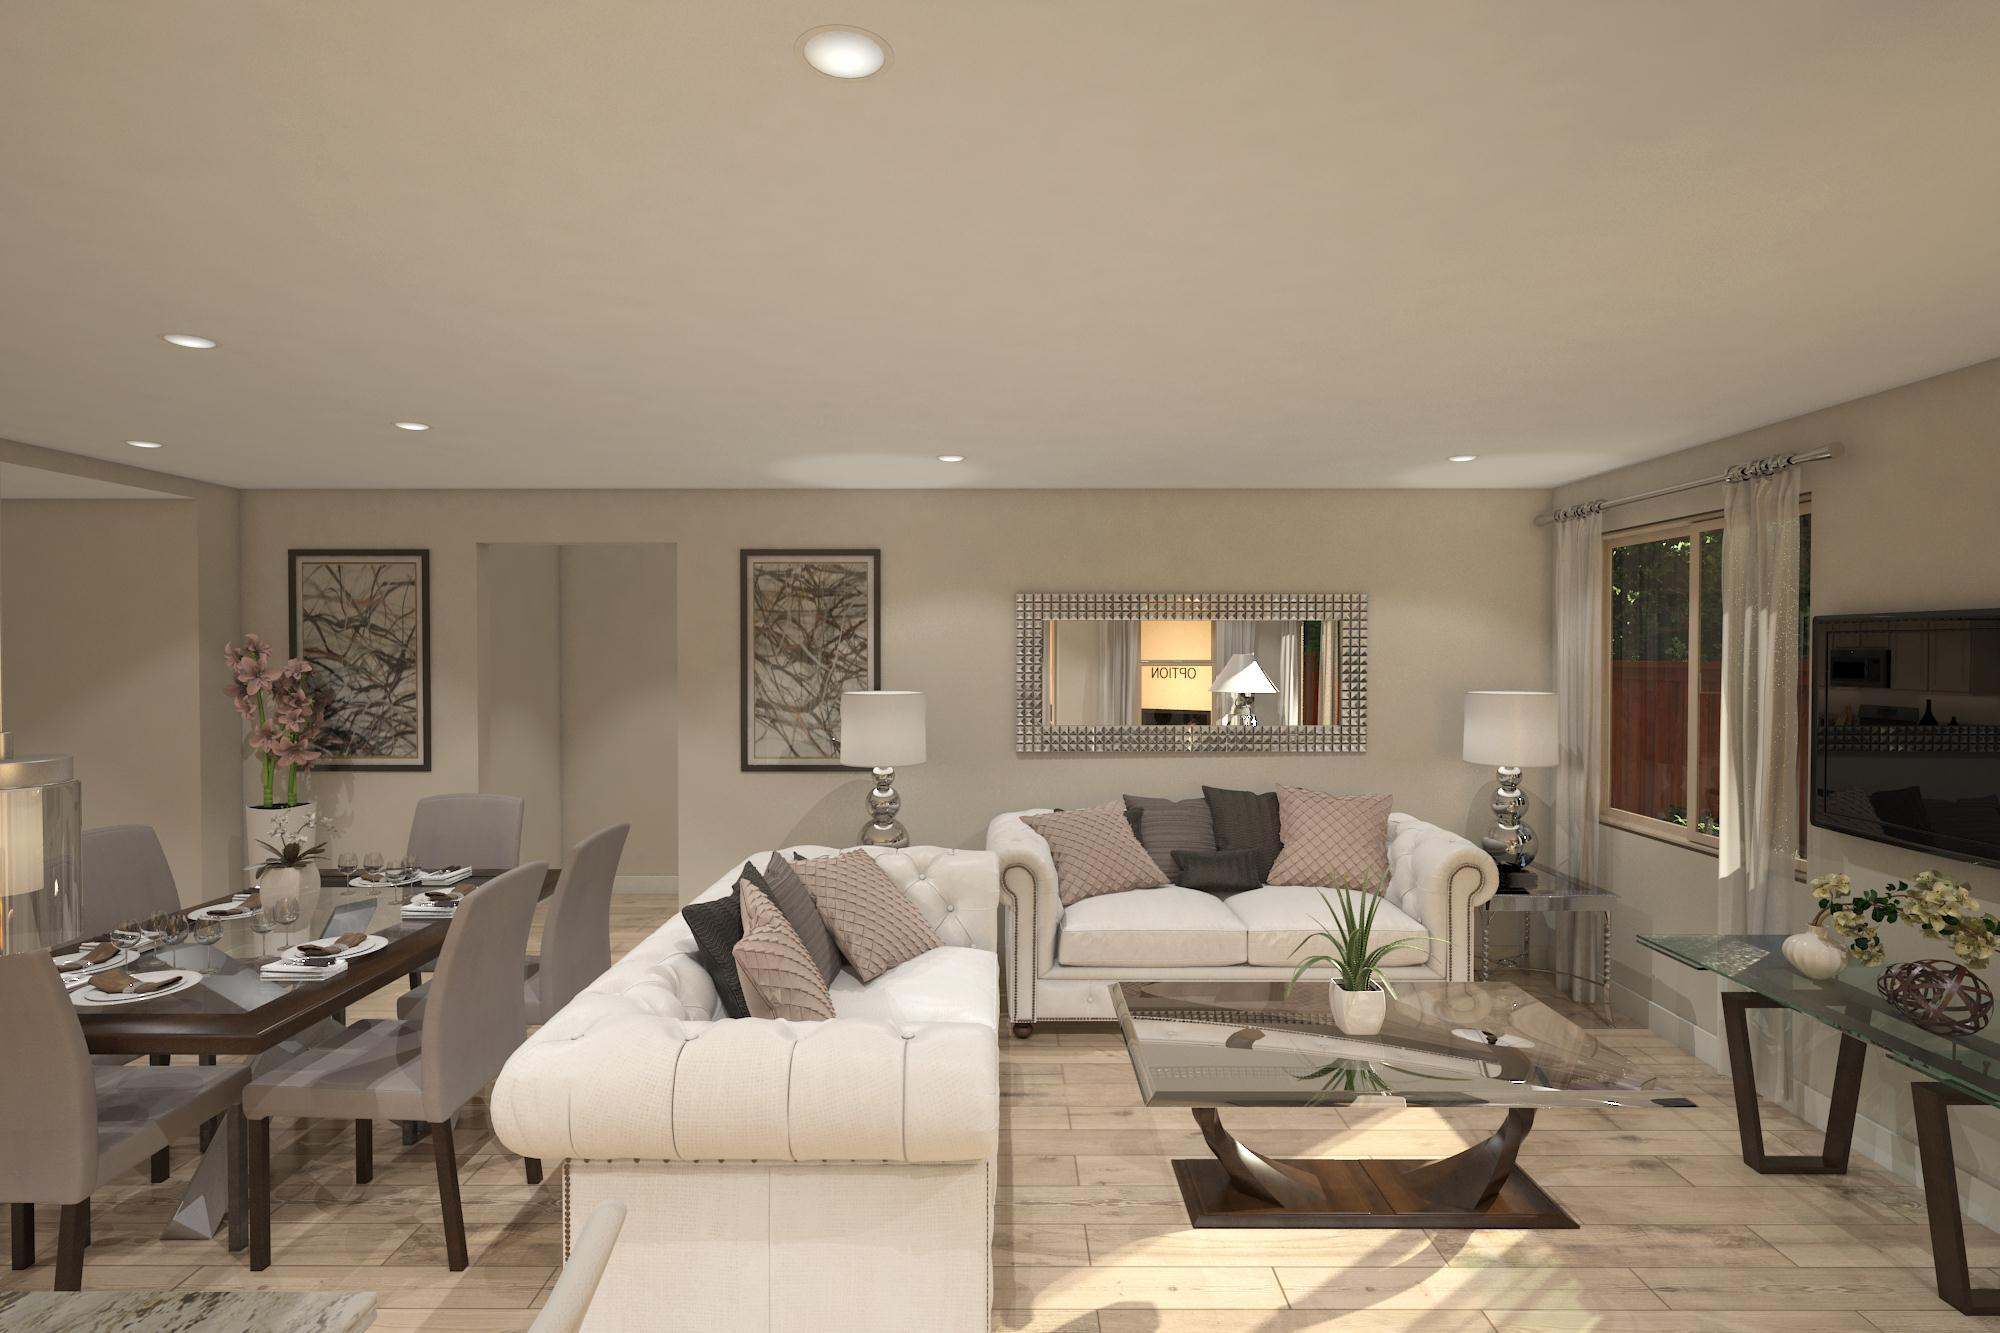 Living Area featured in the Plan 7- 3035 By Jenuane Communities in Reno, NV